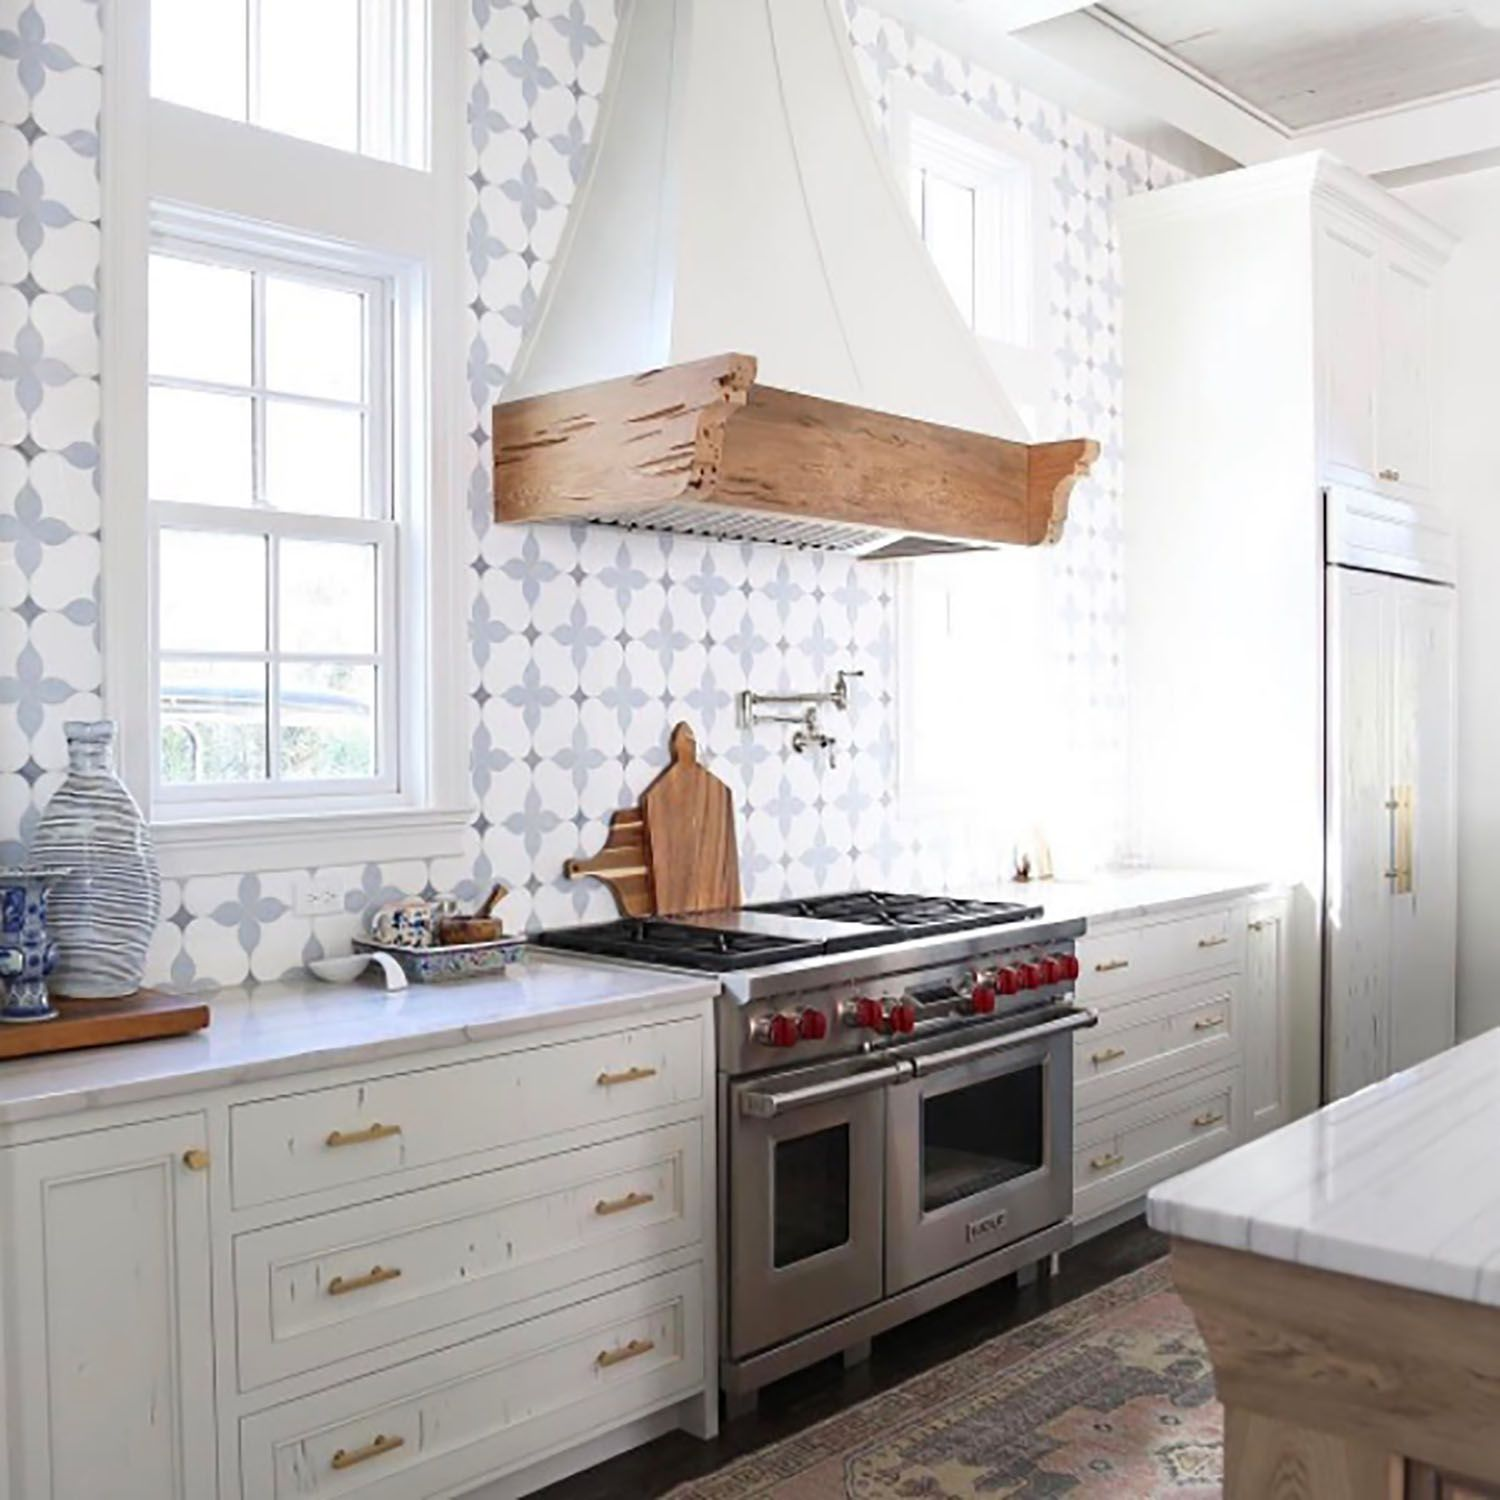 20 Unique Kitchen Backsplashes That Aren\'t Subway Tile